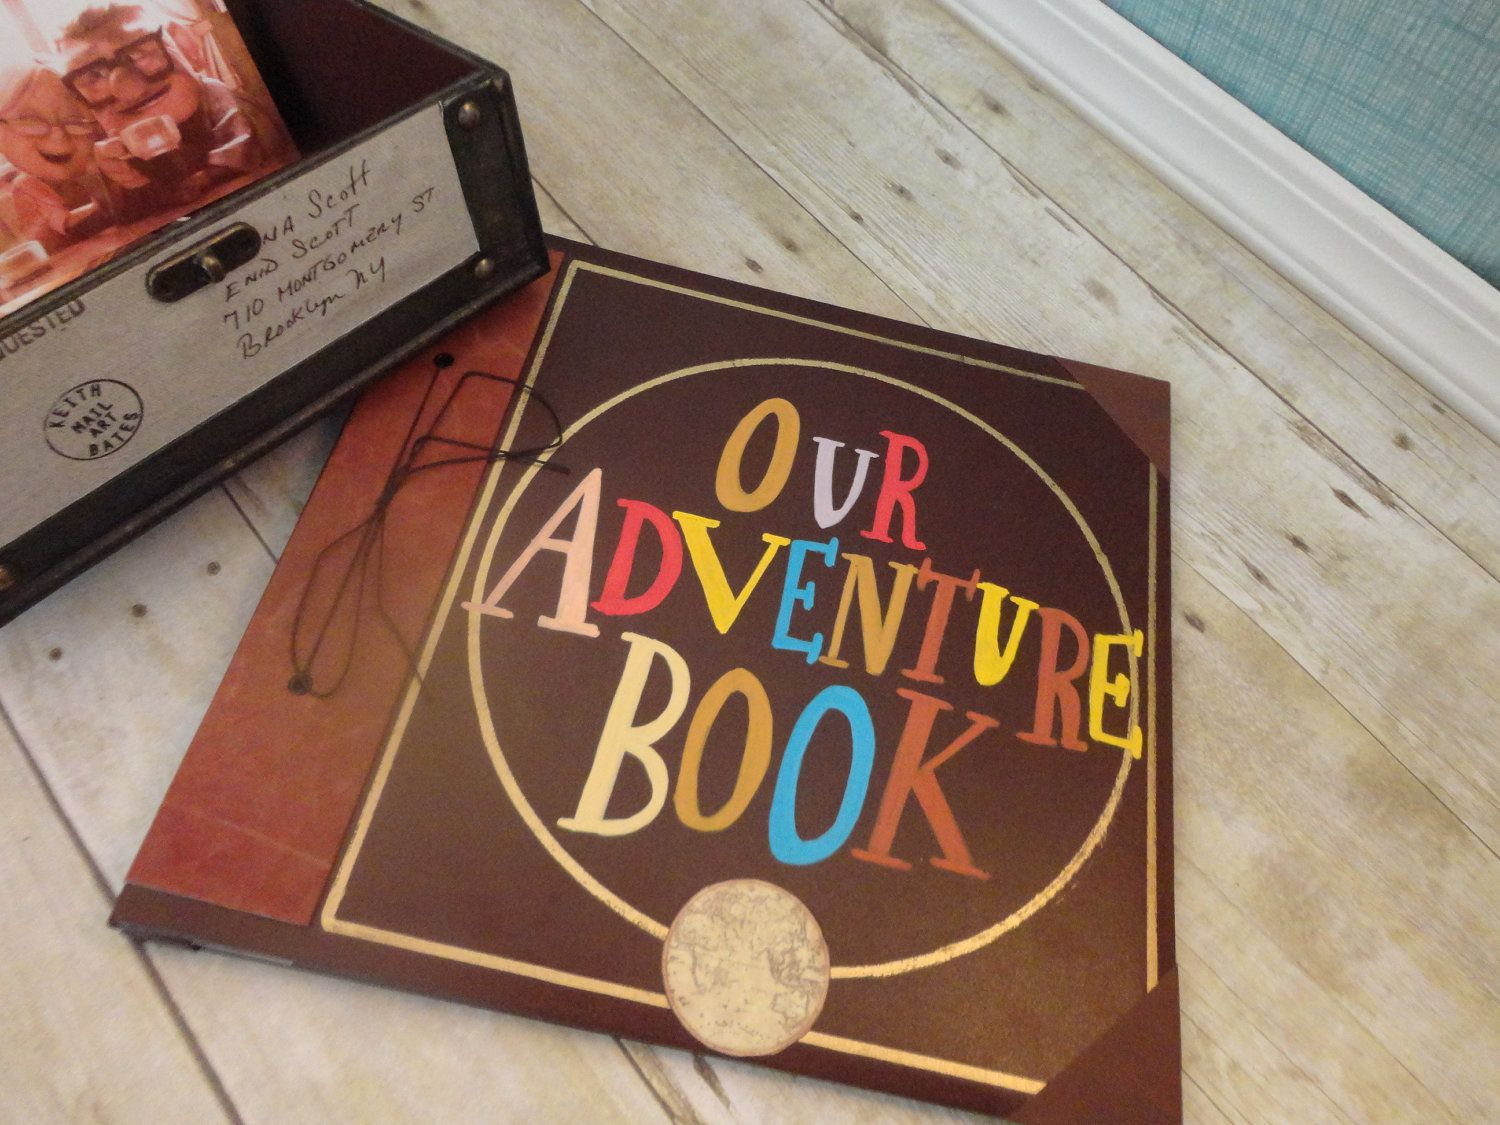 Up Theme Our Adventure Book (scrapbook) KEVIN EDITION